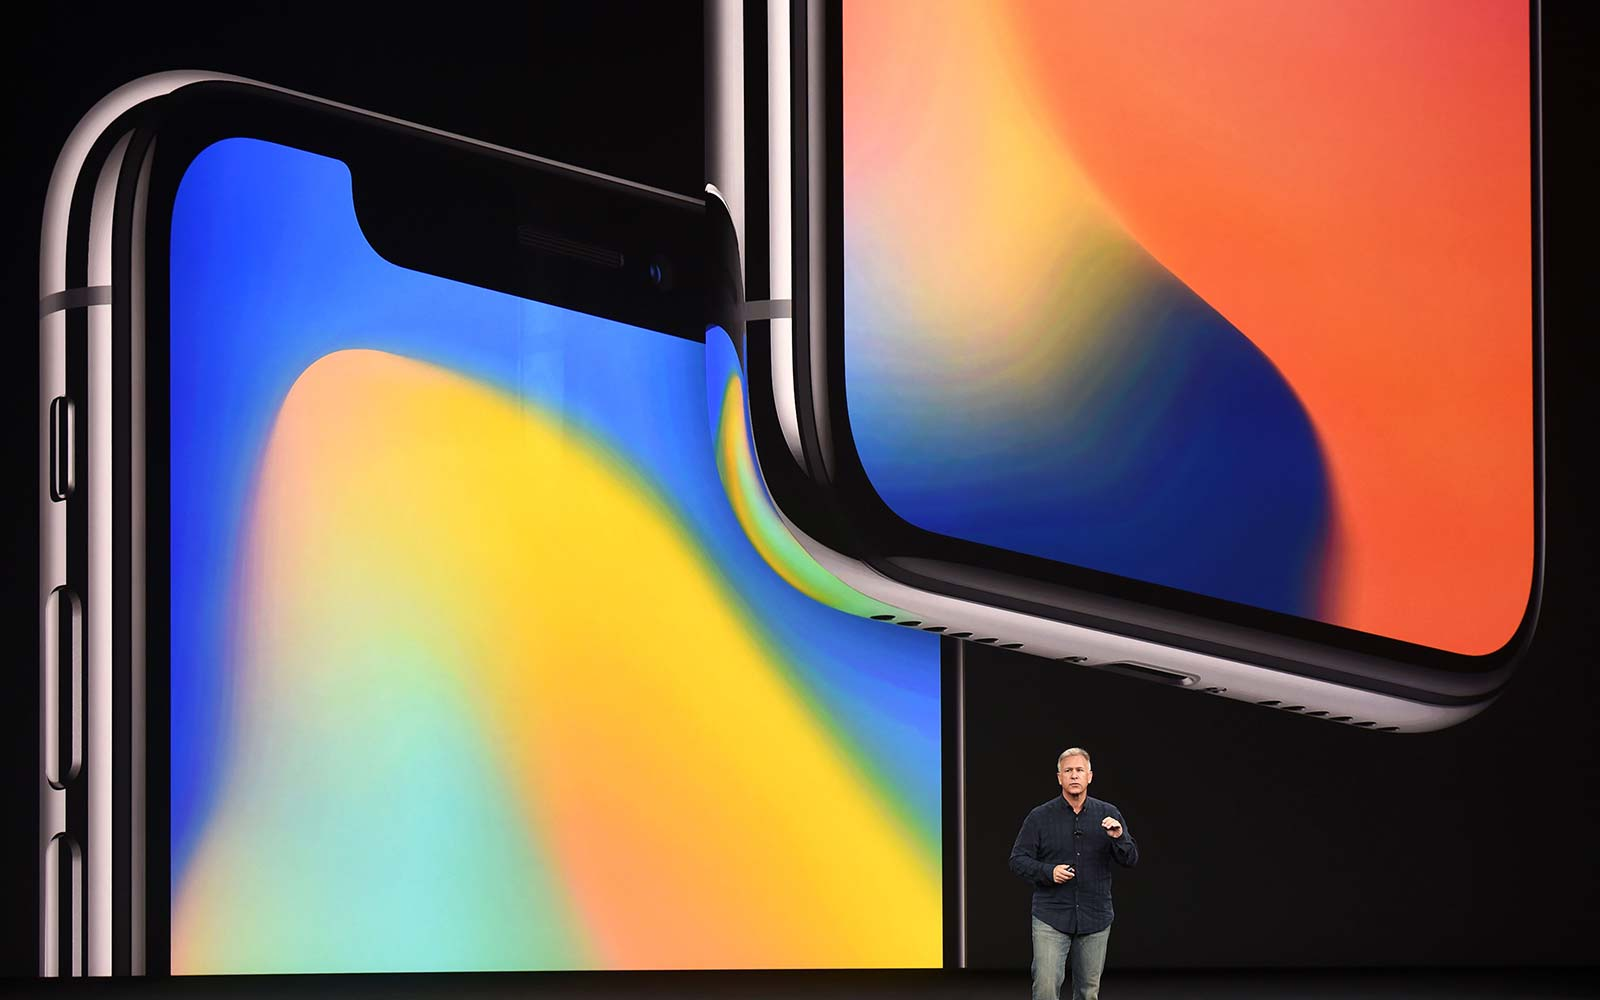 New iPhone 8 and iPhone X Apple release features vibrant camera water resistant facial recognition technology